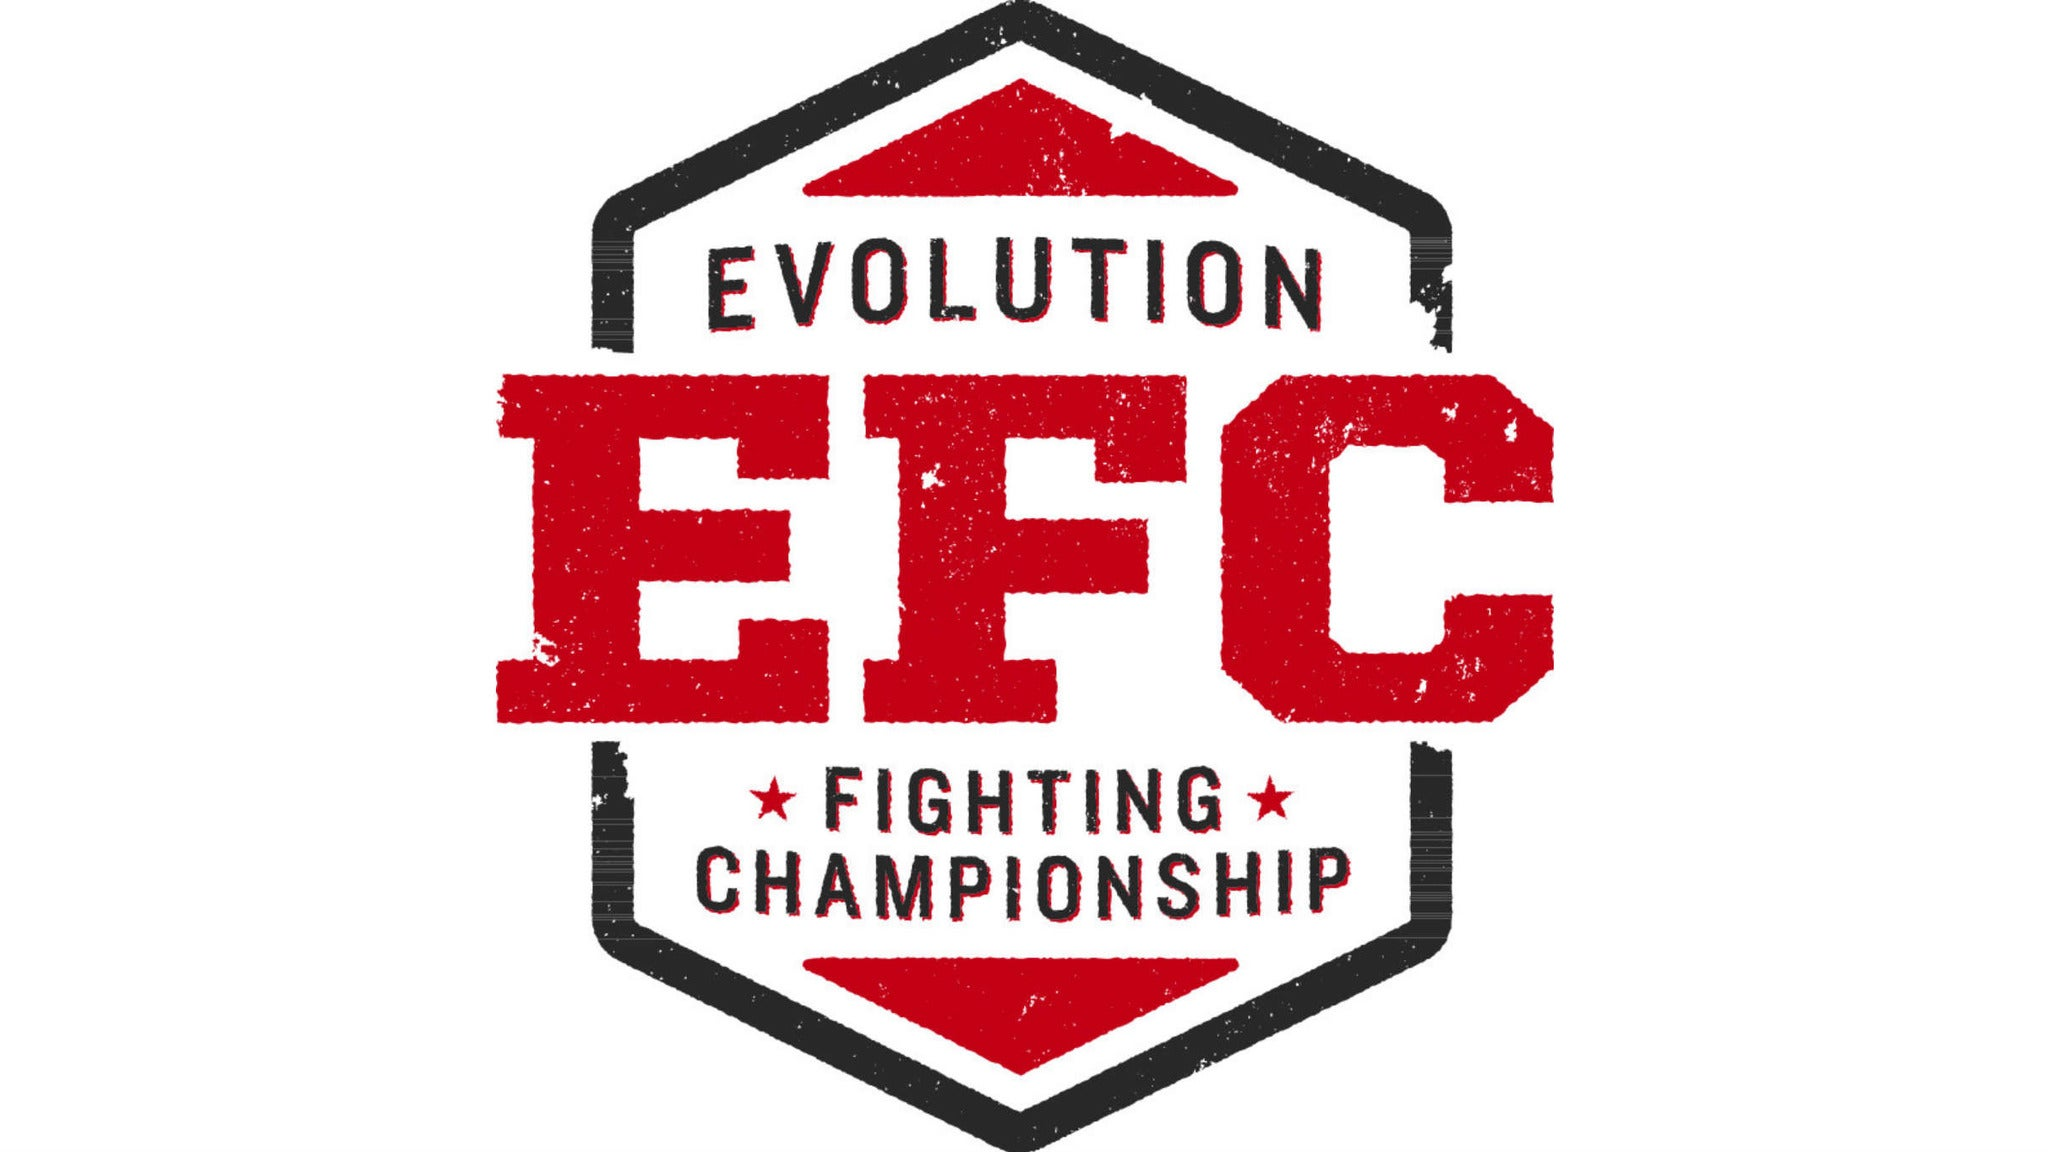 Evolution Fighting Championship X Mma